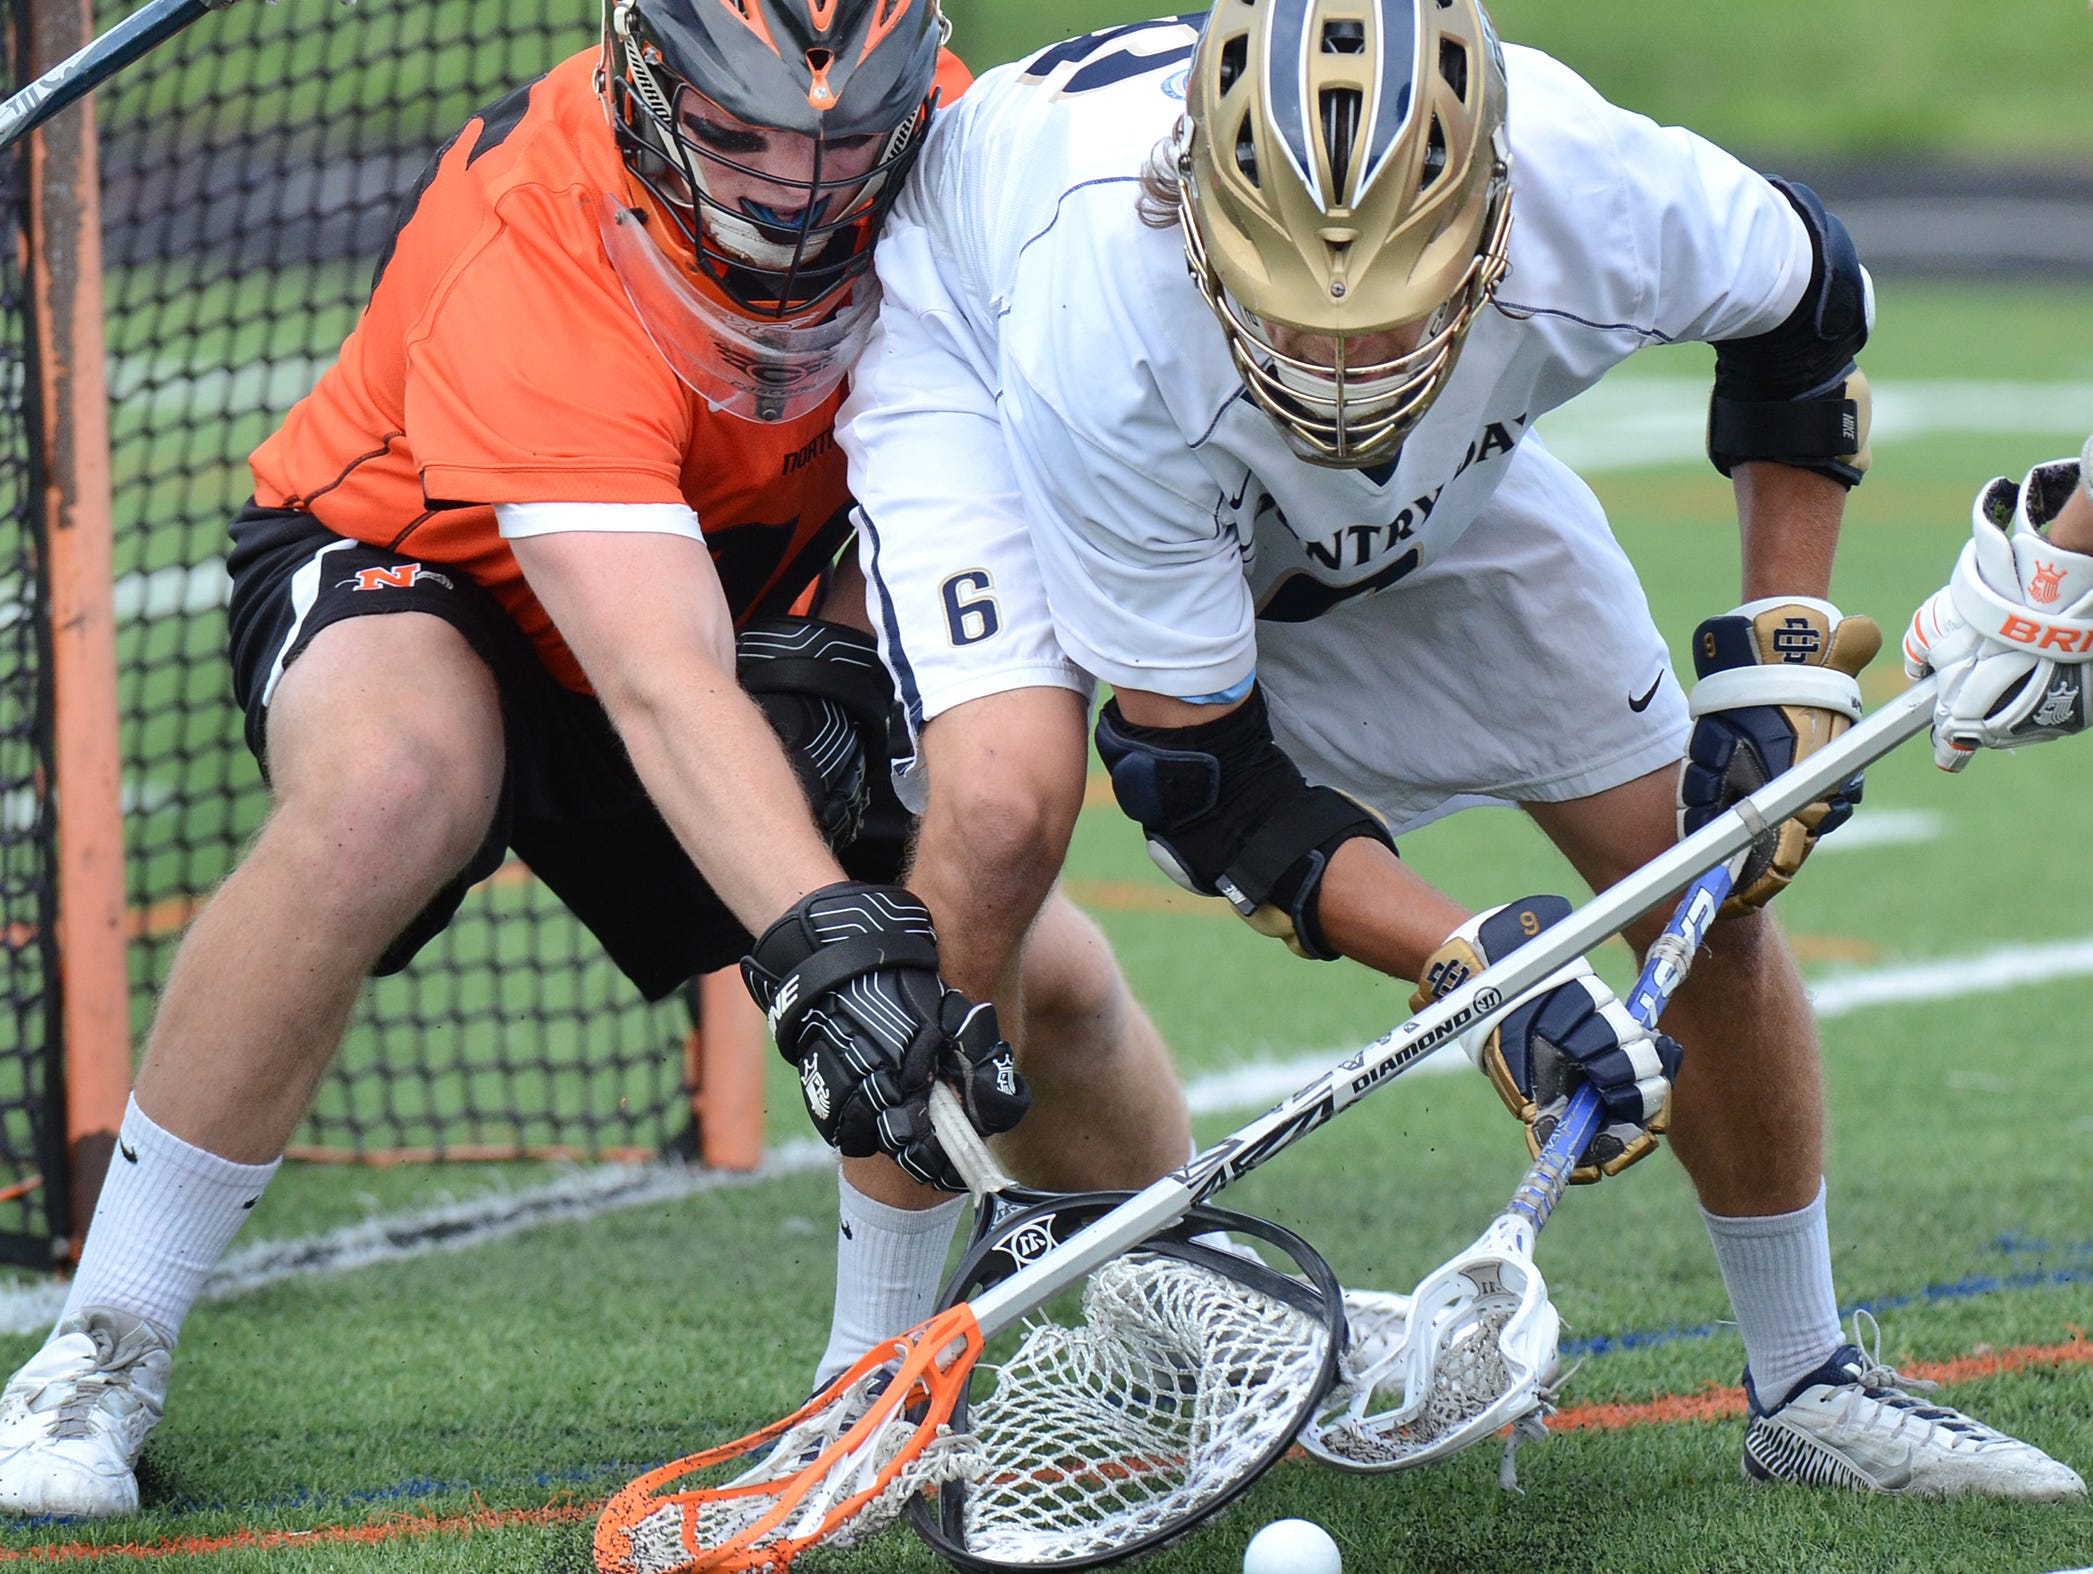 Northville goalie Alex Justice (left) battles with Country Day's Nick Martin for control of the ball in the crease during the May 26 boys lacrosse regional semifinal.